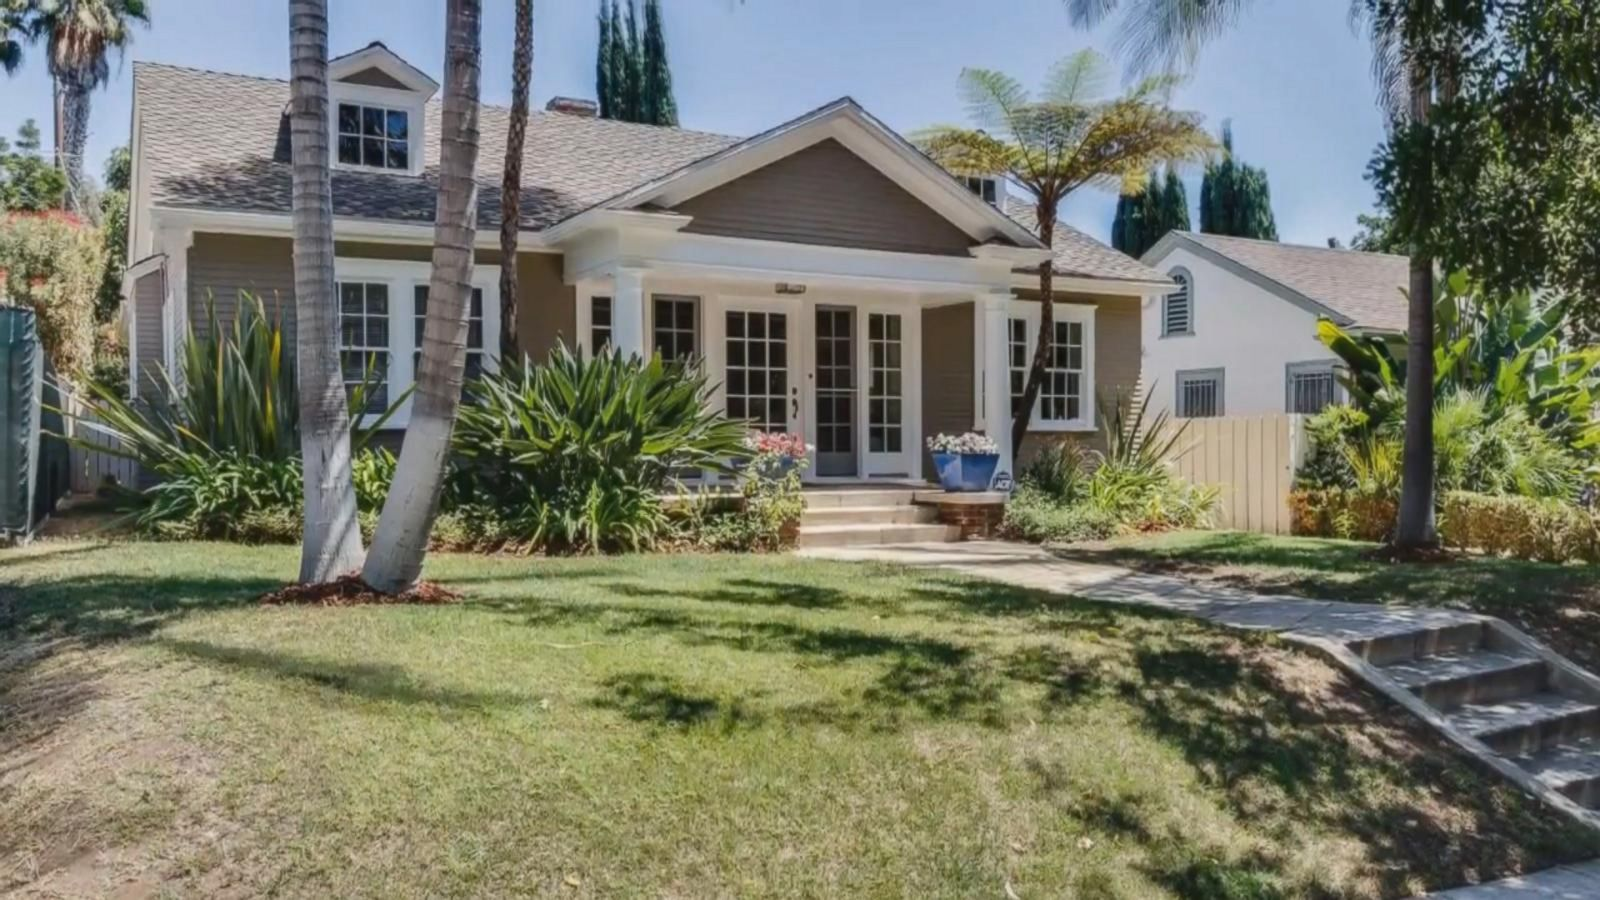 VIDEO: Lucille Ball's First Hollywood Home Listed at $1.75 Million